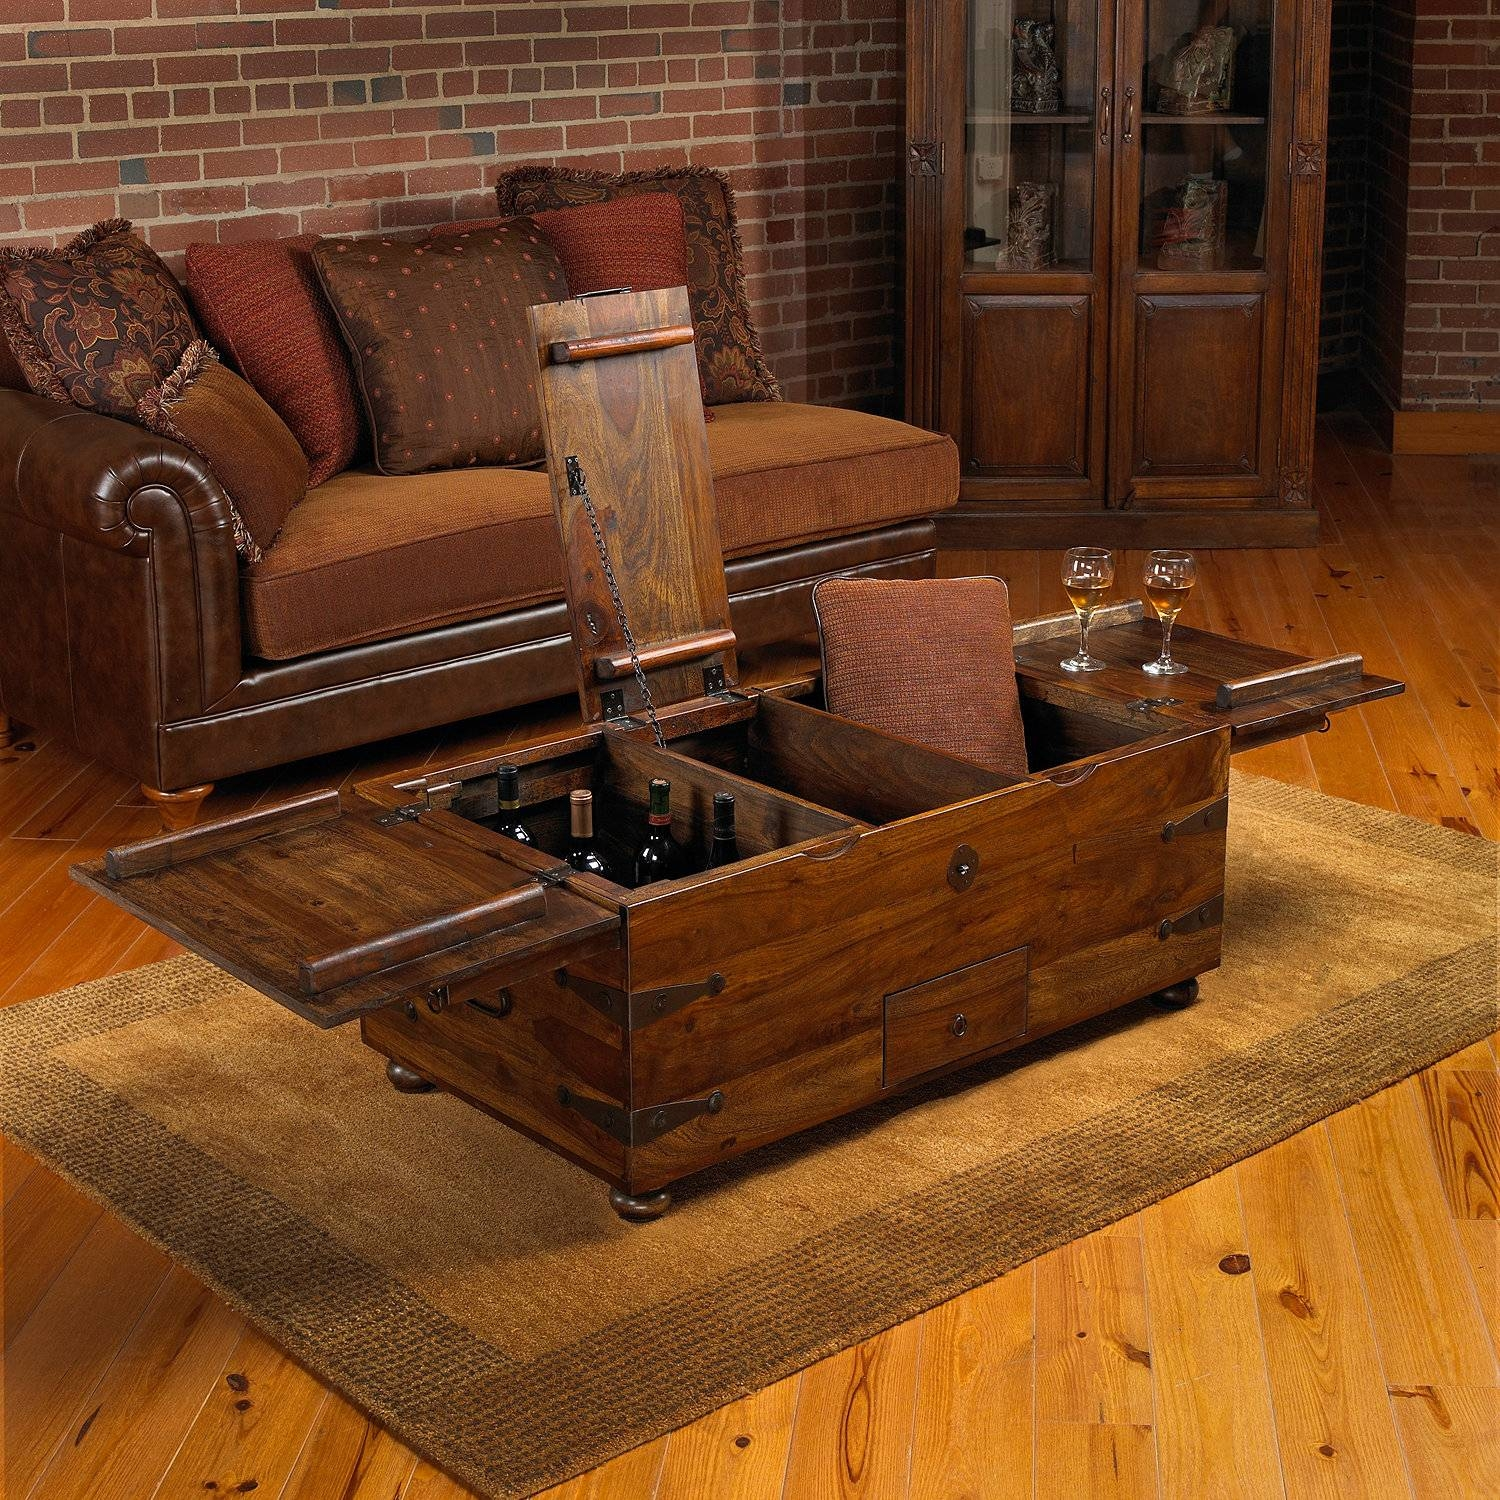 Thakat Bar Box Trunk Coffee Table - Wine Enthusiast with regard to Trunks Coffee Tables (Image 28 of 30)